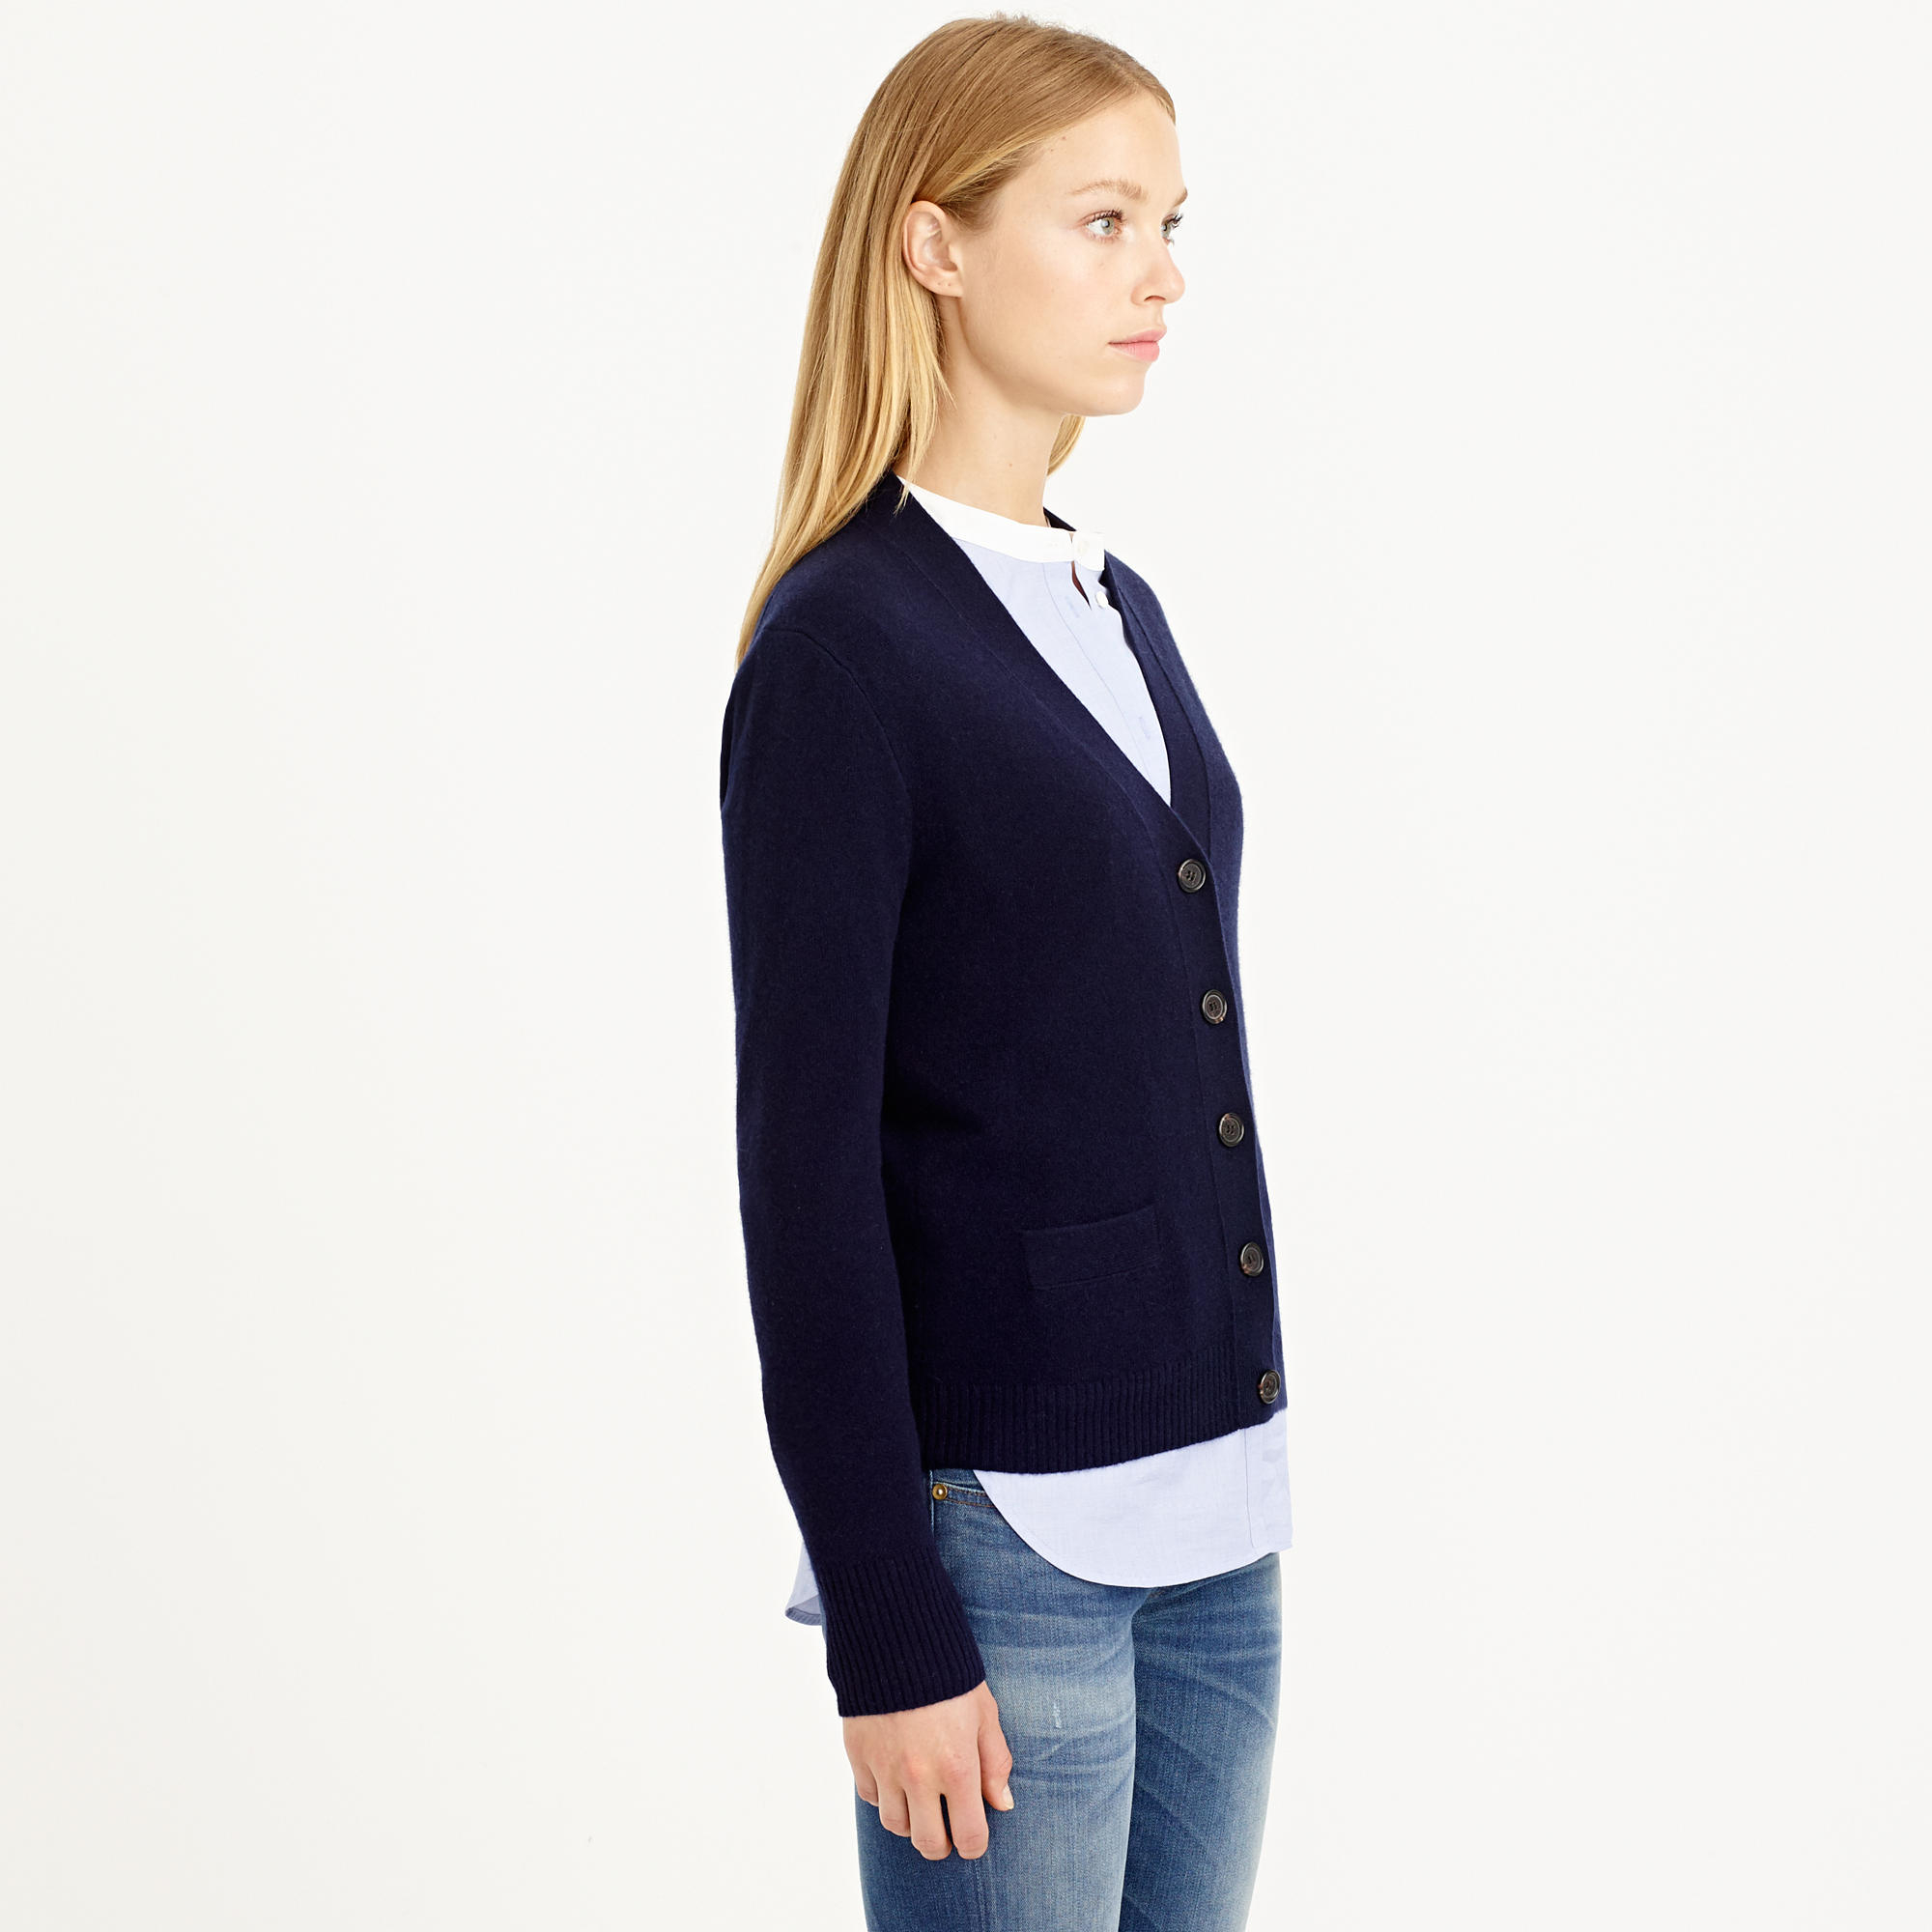 J.crew Collection Cashmere V-neck Cardigan Sweater in Blue | Lyst